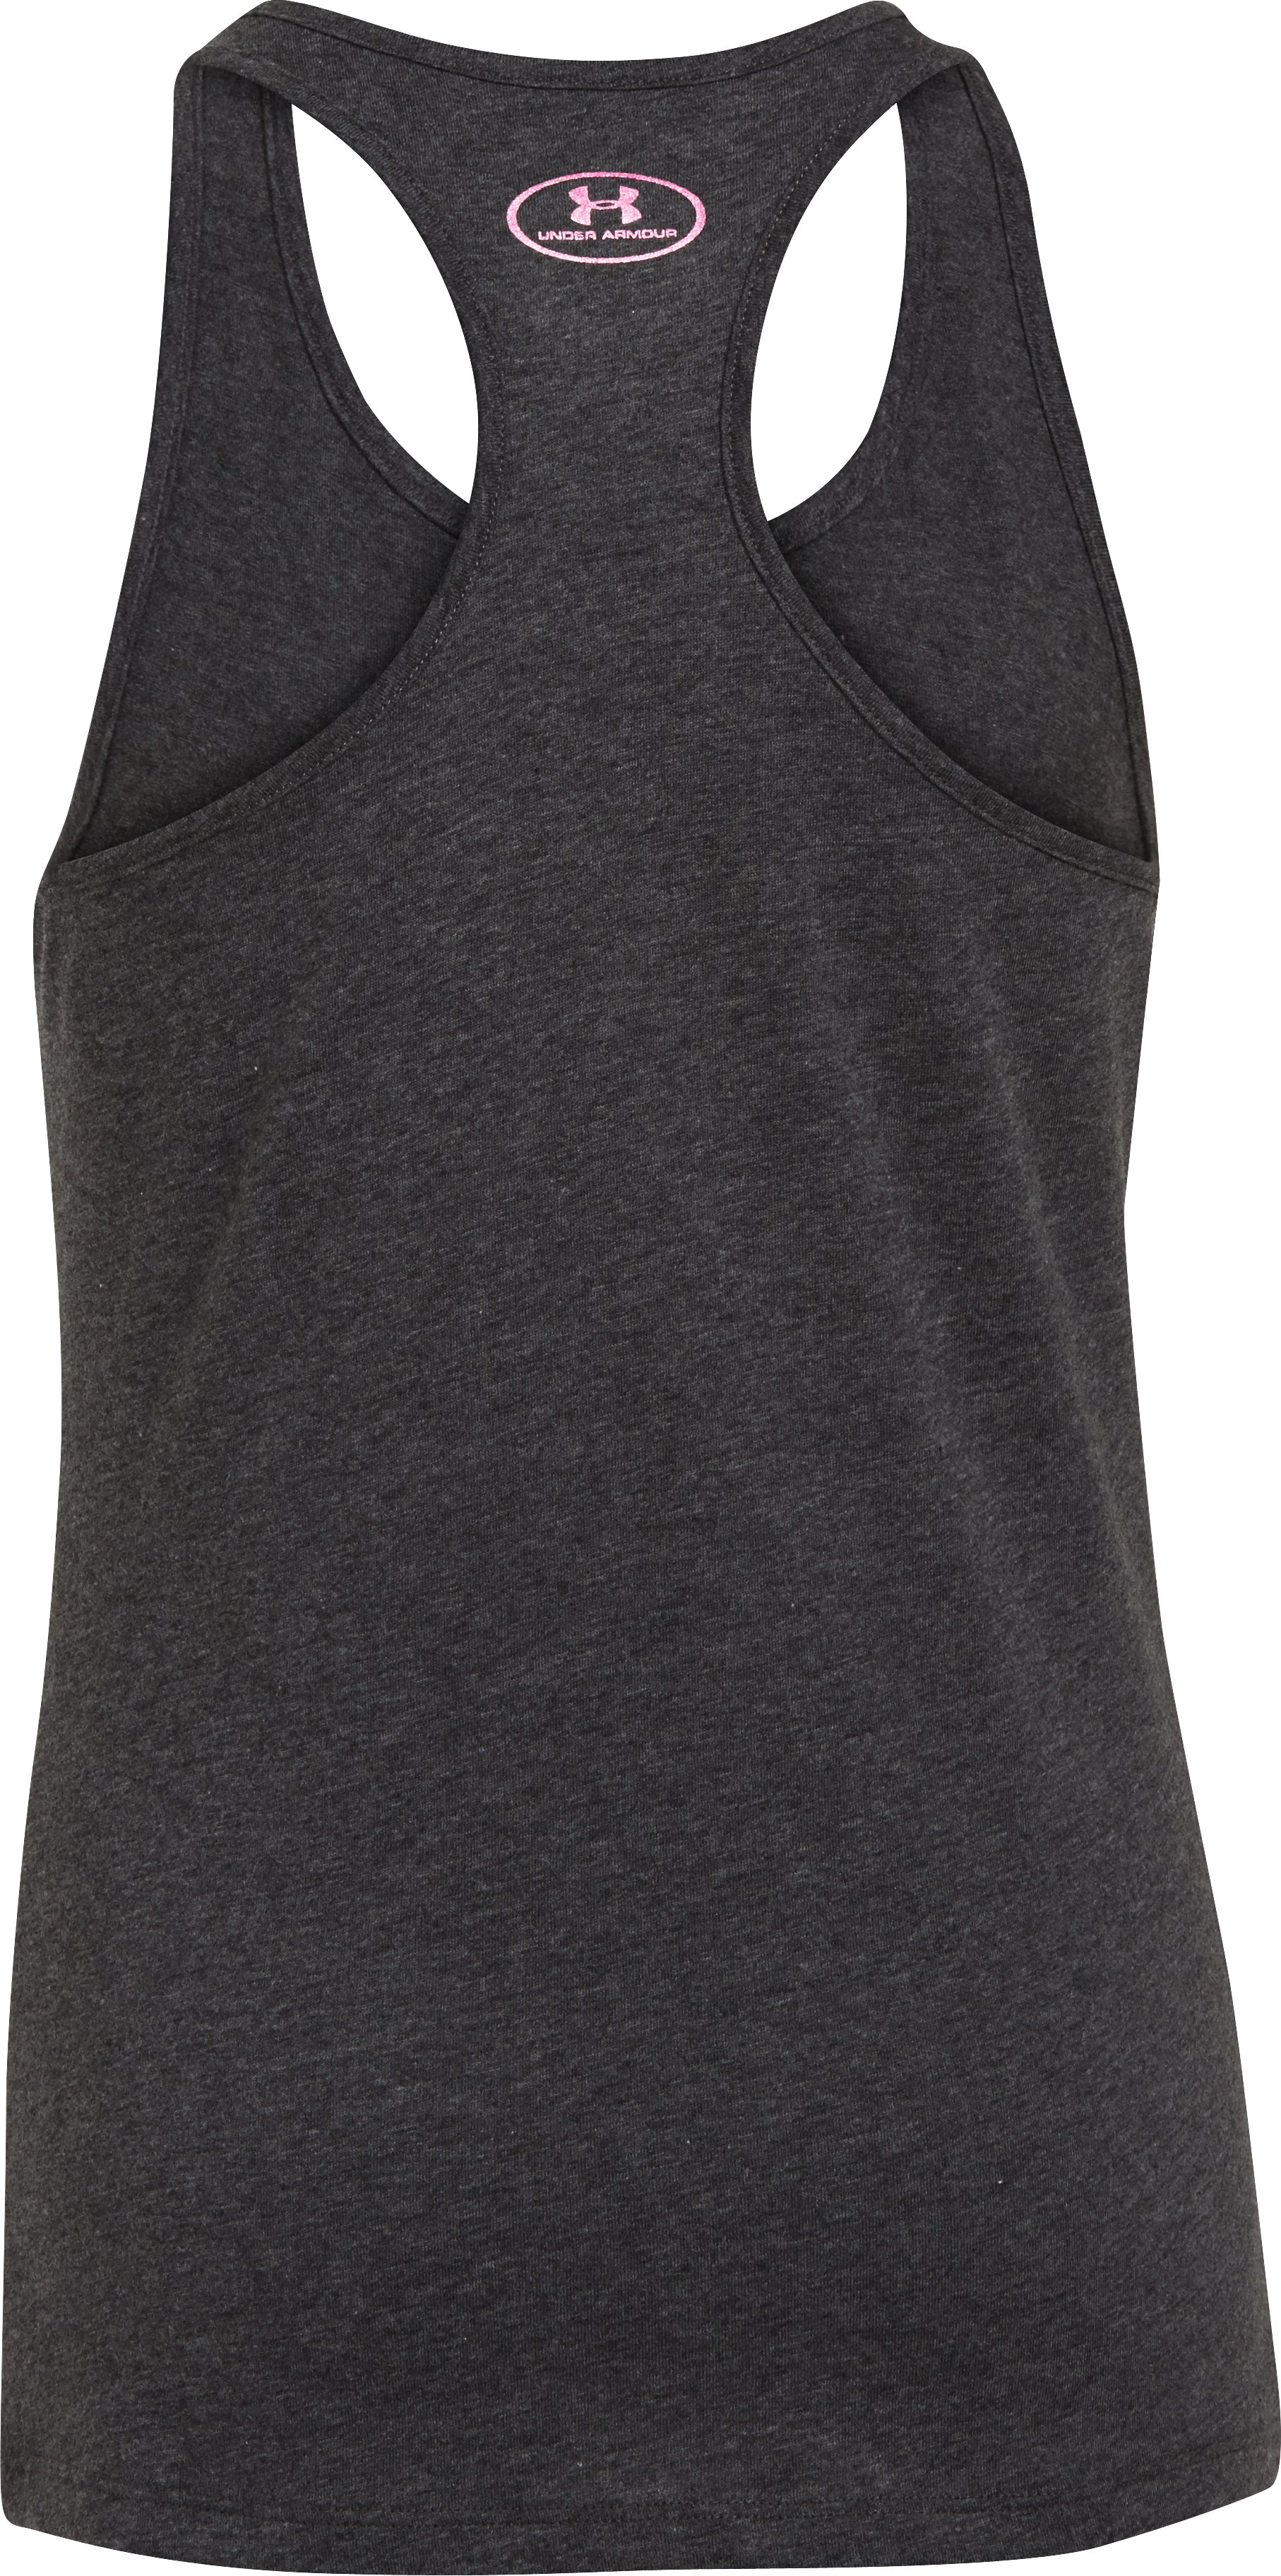 Girls' UA Wonder Woman Printed Logo Tank, Carbon Heather